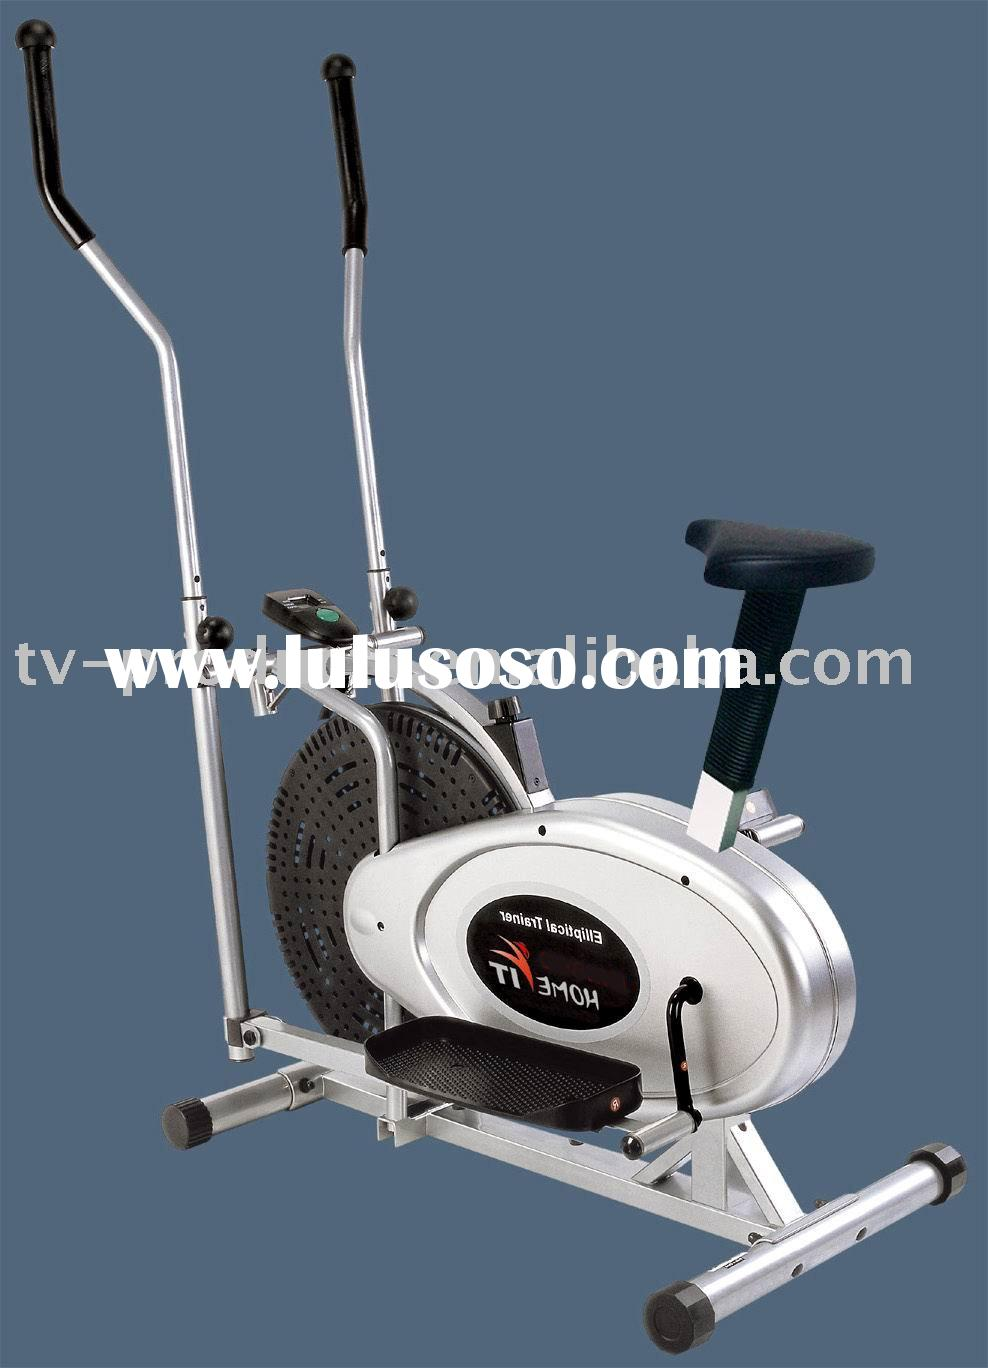 Excise Bike,AB-Bike,Body Building,Fitness Equipment,Sports Equipment